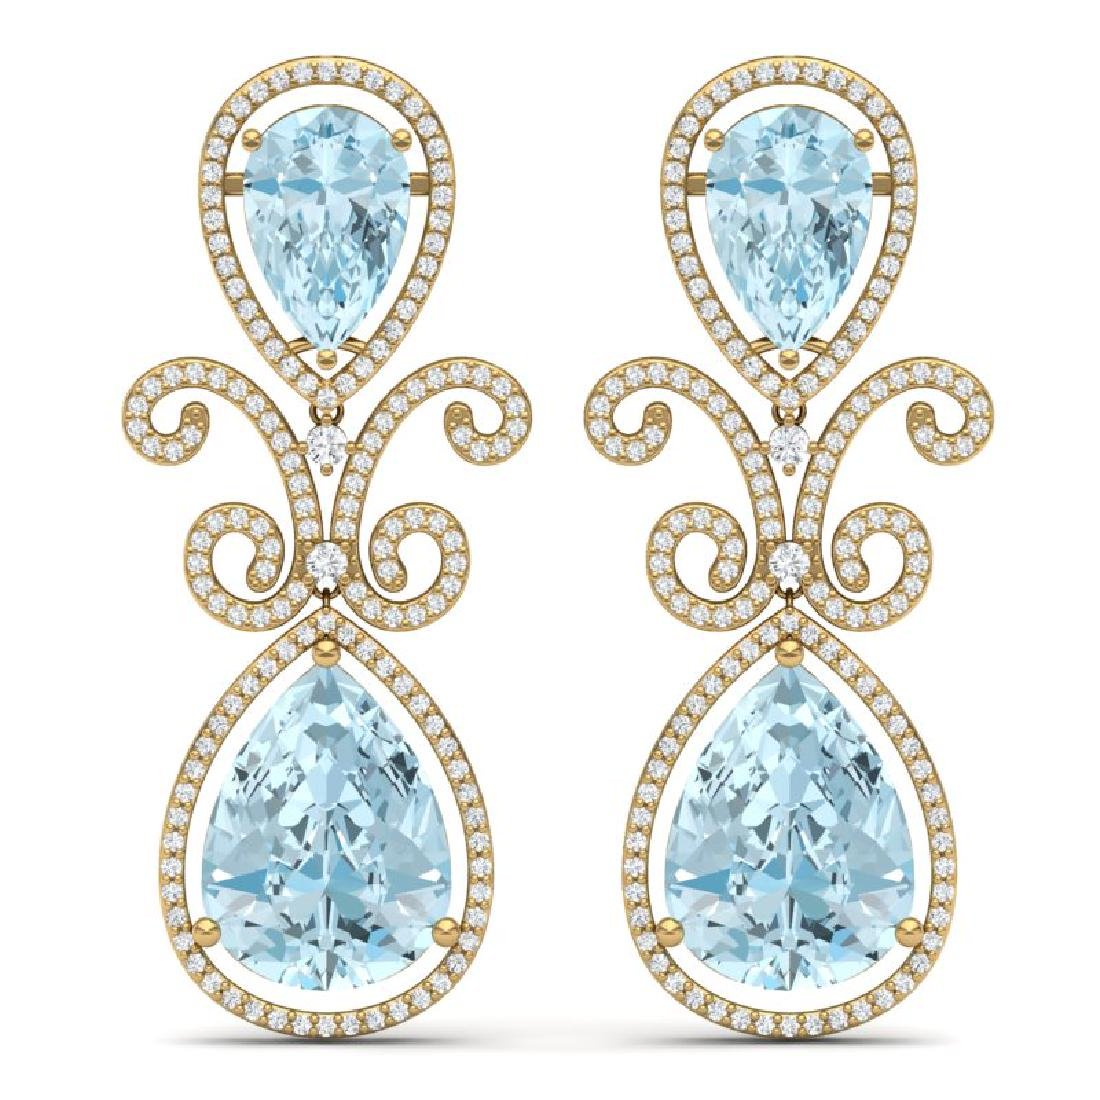 30.49 CTW Royalty Sky Topaz & VS Diamond Earrings 18K